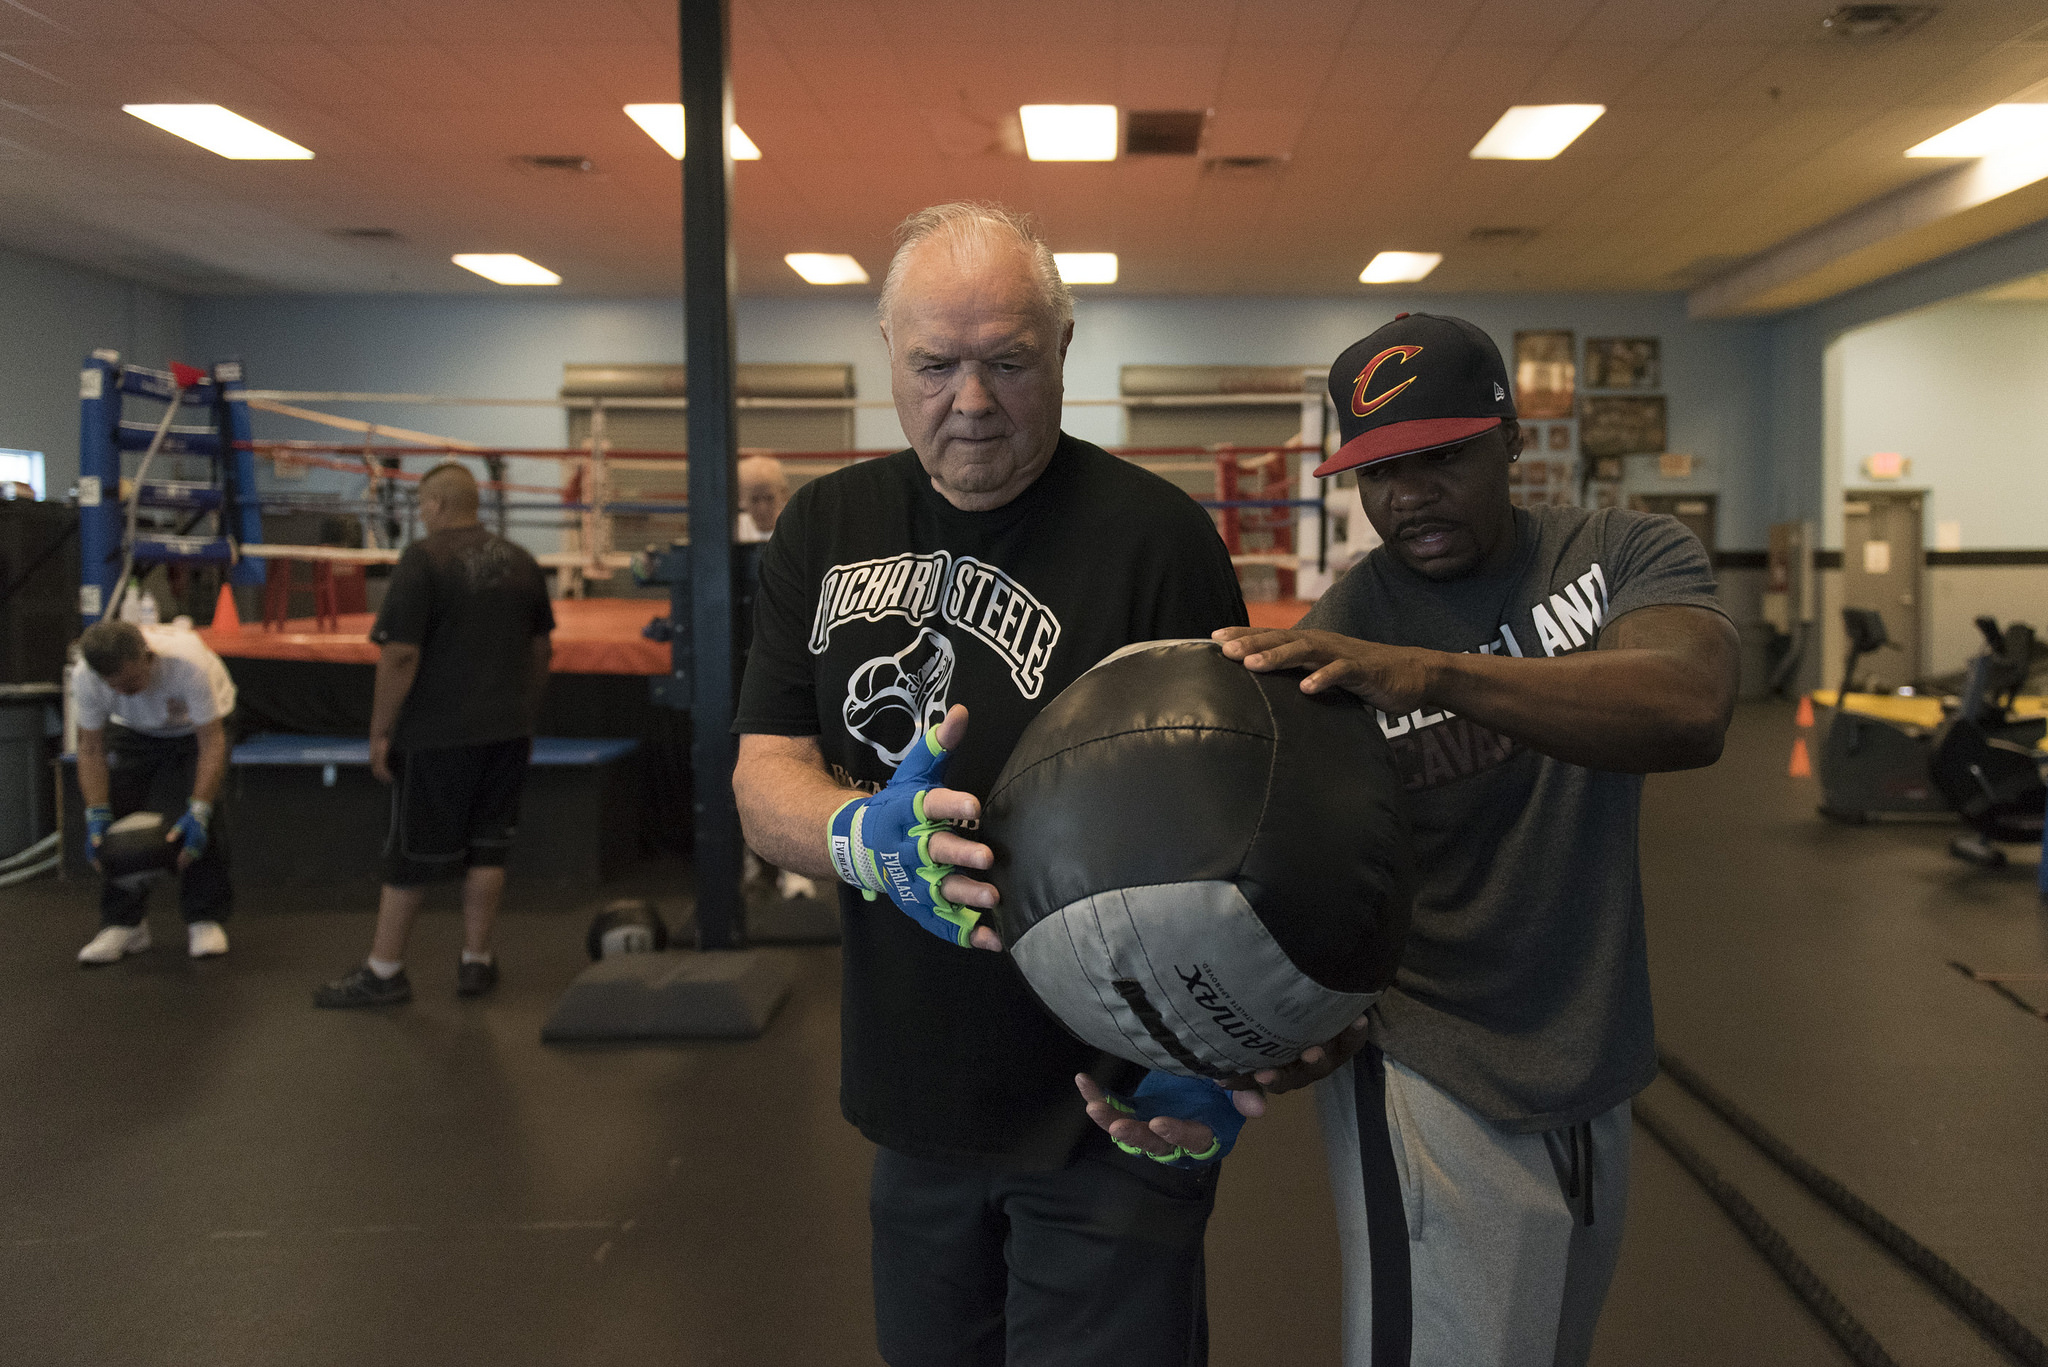 Instructor Donche King, right, and Jerry Sloan do ball exercises during the Rock Steady Boxing Program at Richard Steele Boxing Club in North Las Vegas Monday, June 20, 2016.  The therapy helps to slow the effects of Parkinson's disease. Jason Ogulnik/Las Vegas Review-Journal